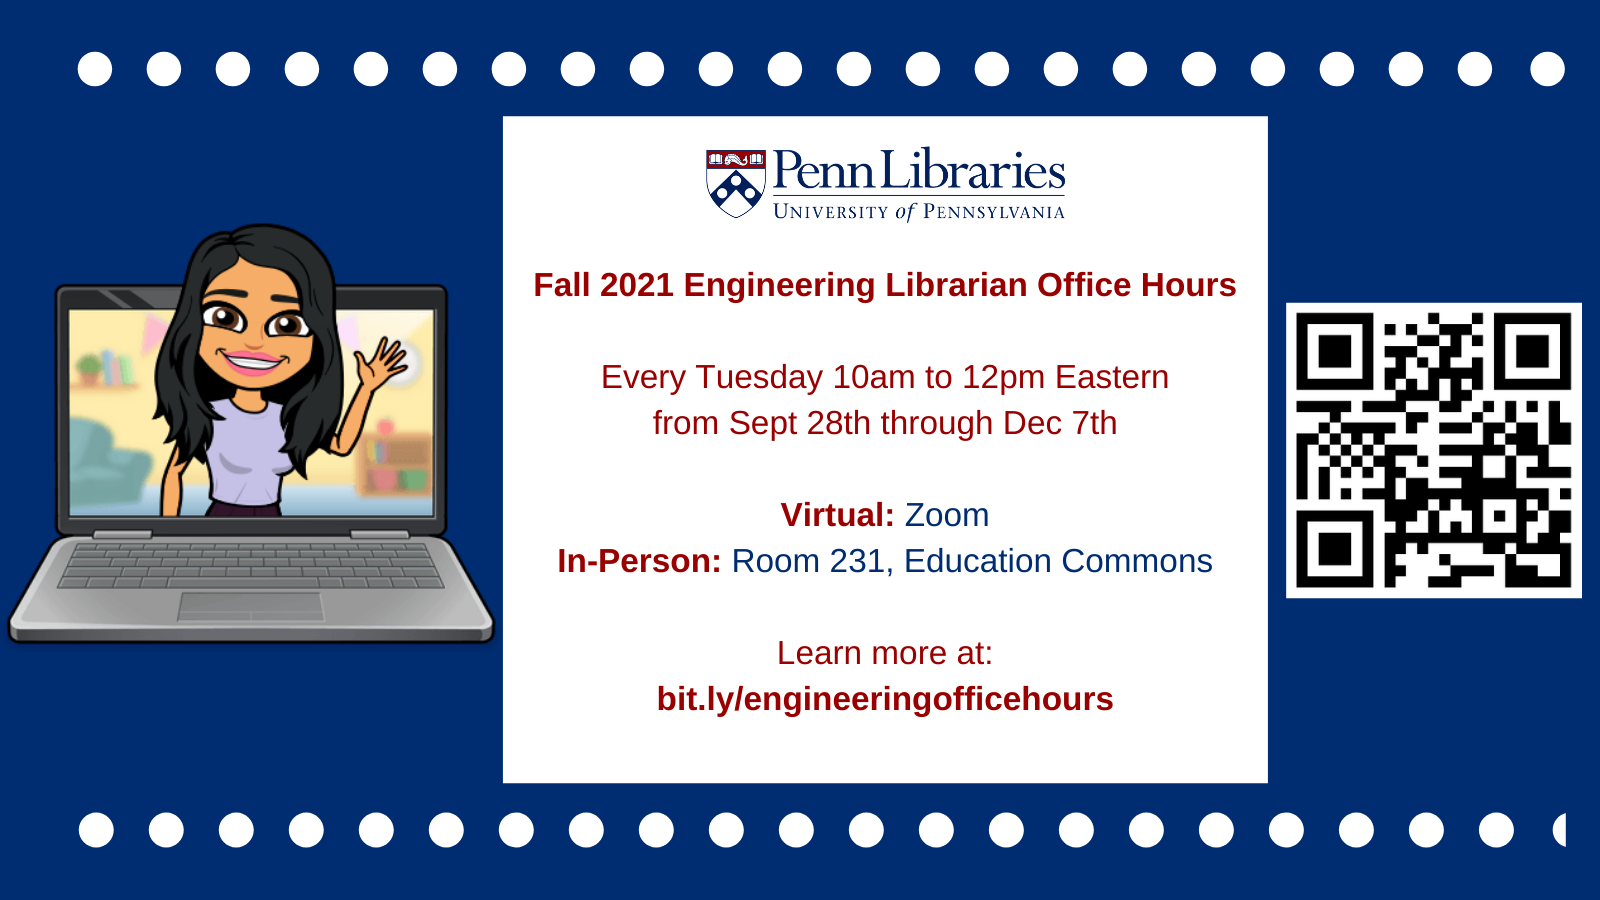 Hybrid Engineering Librarian Office Hours